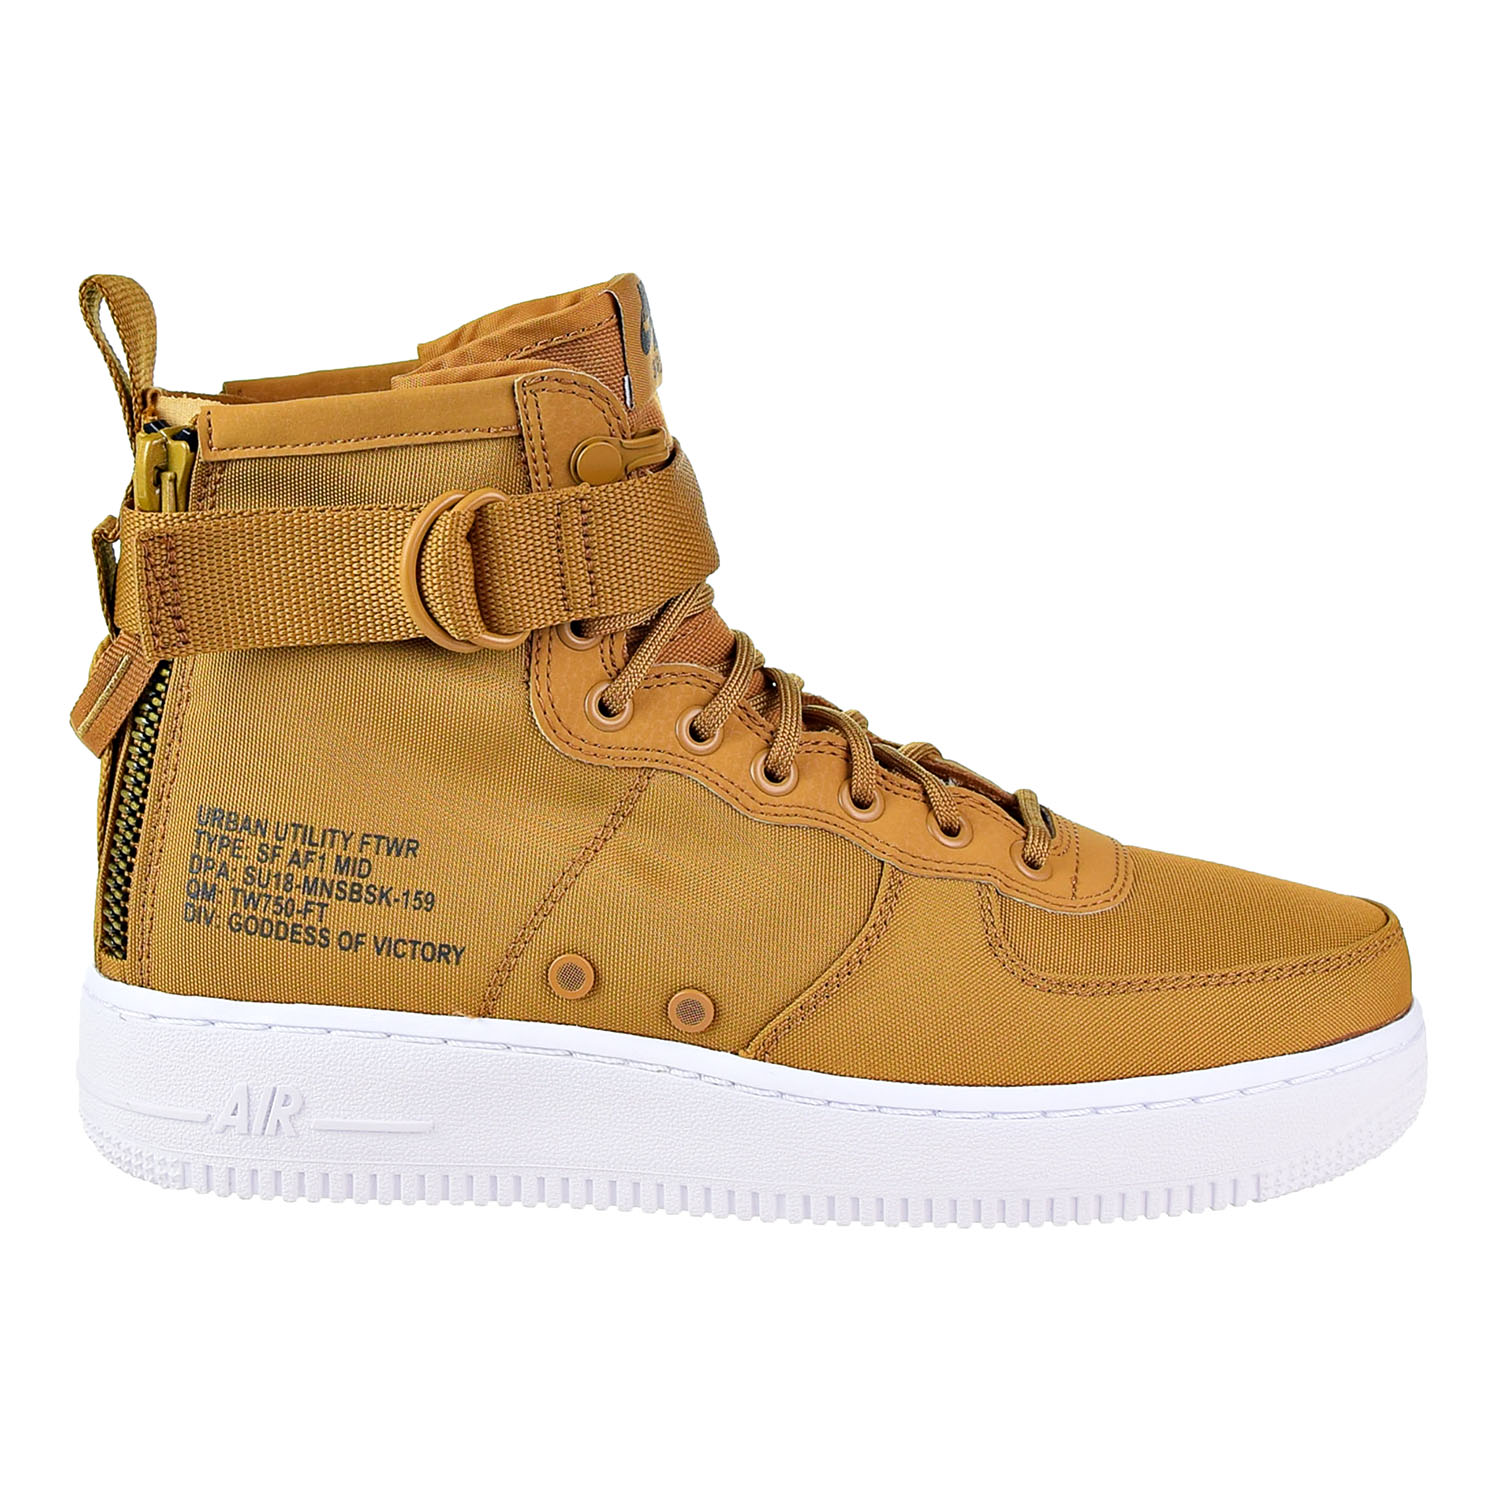 Details about Nike SF Air Force 1 Mid Men's Shoes Desert Ochre Sequola White 917753 700